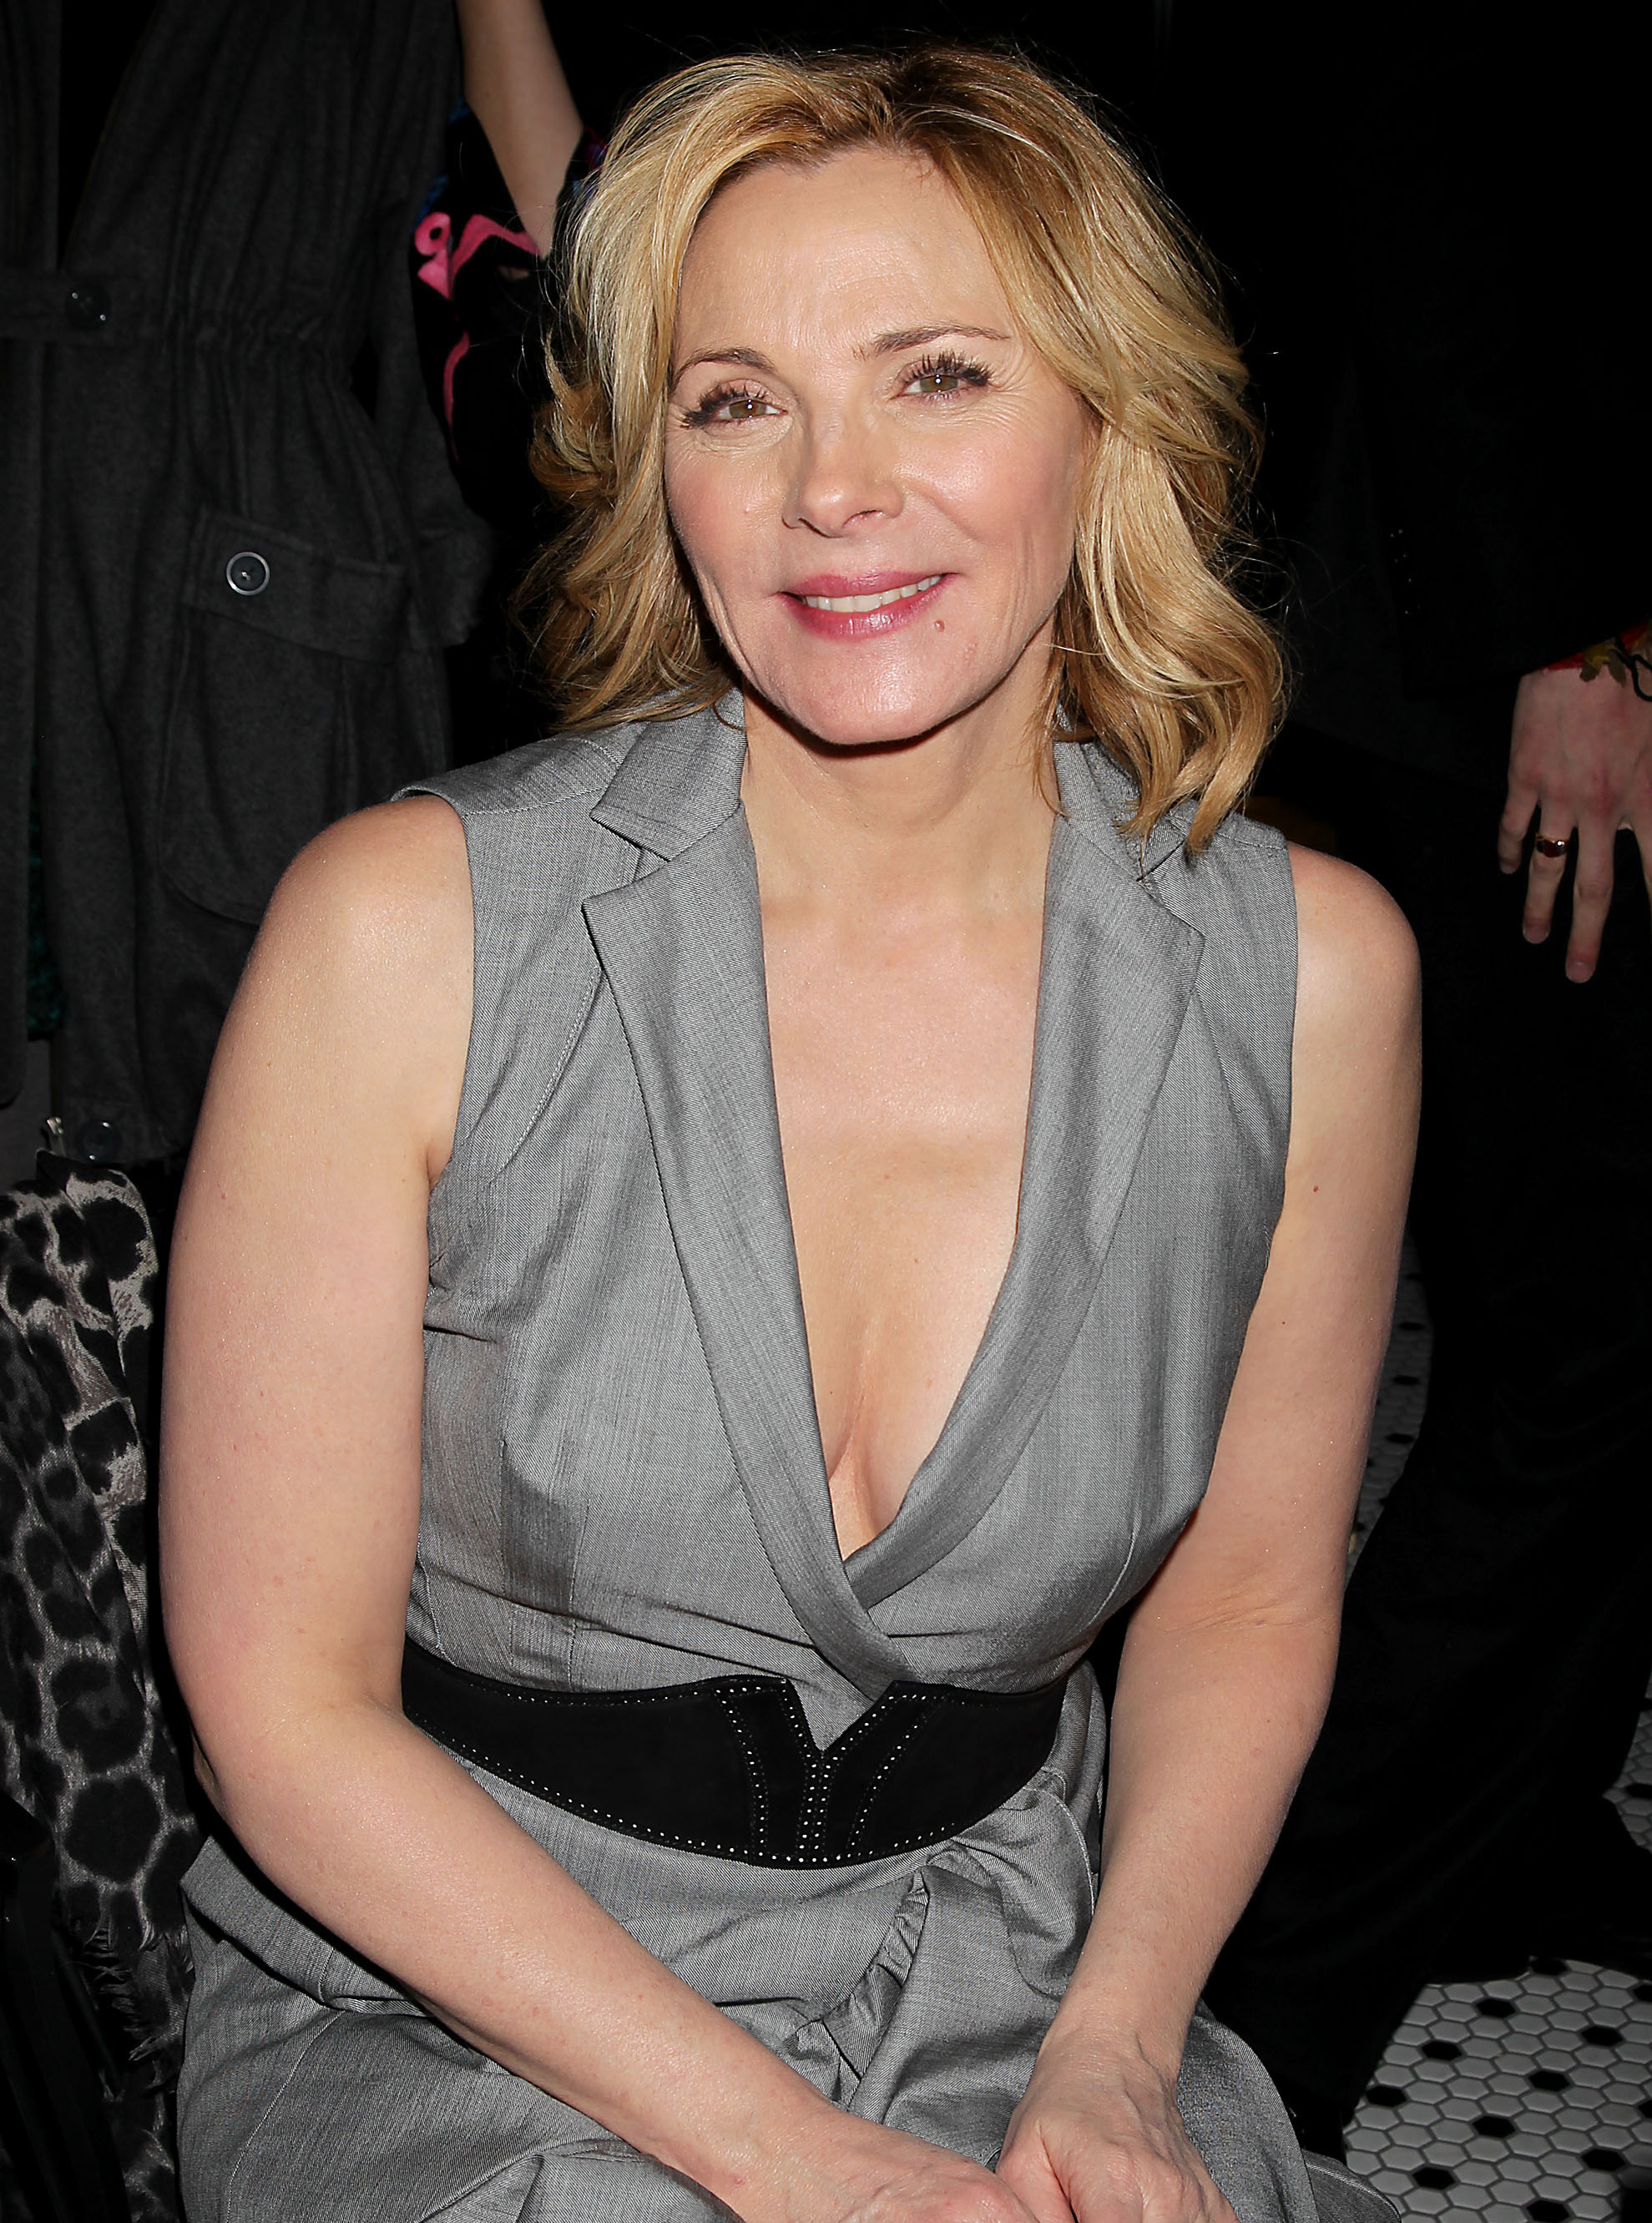 Kim Cattrall 2018: Hair, Eyes, Feet, Legs, Style, Weight ... Kim Cattrall